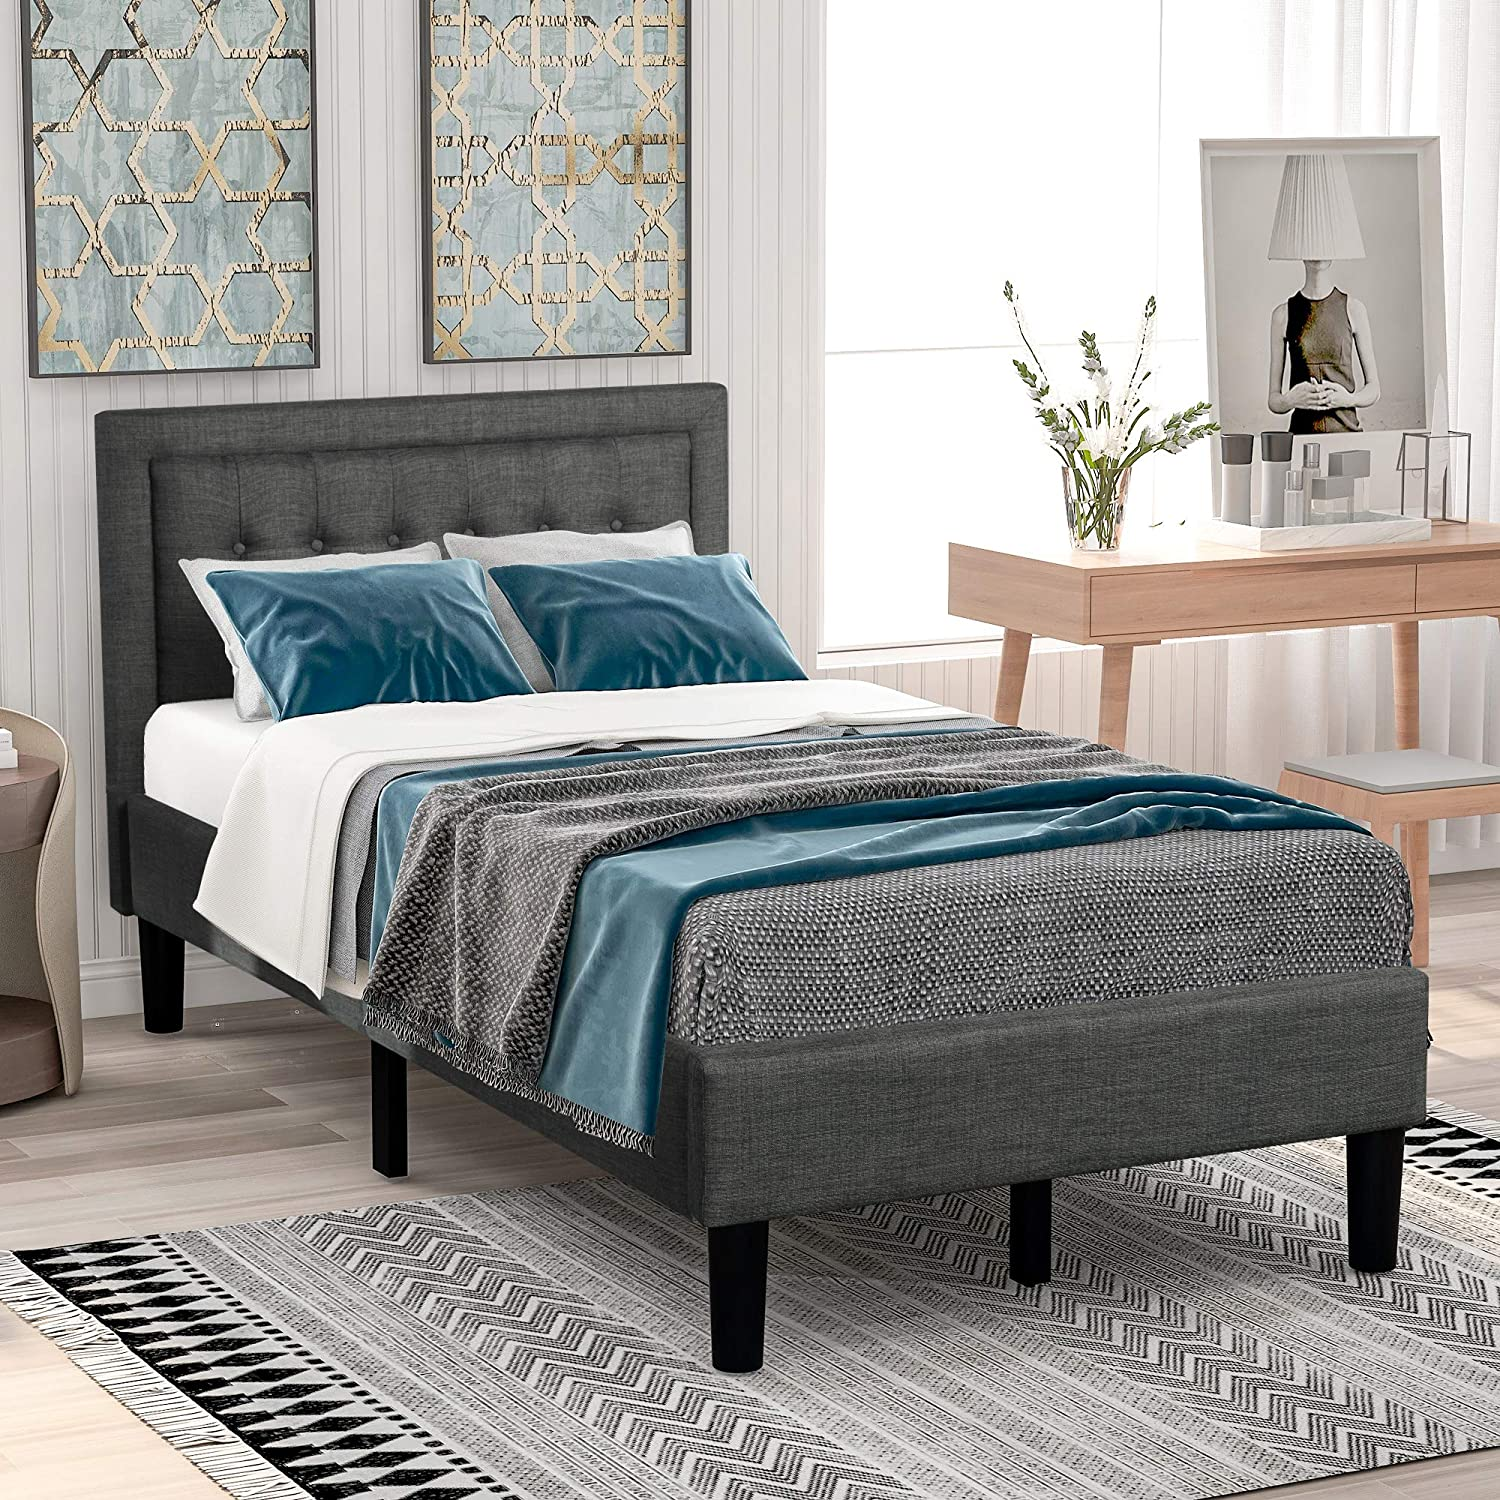 Upholstered Platform Bed, Twin Platform Bed Frame with Headboard